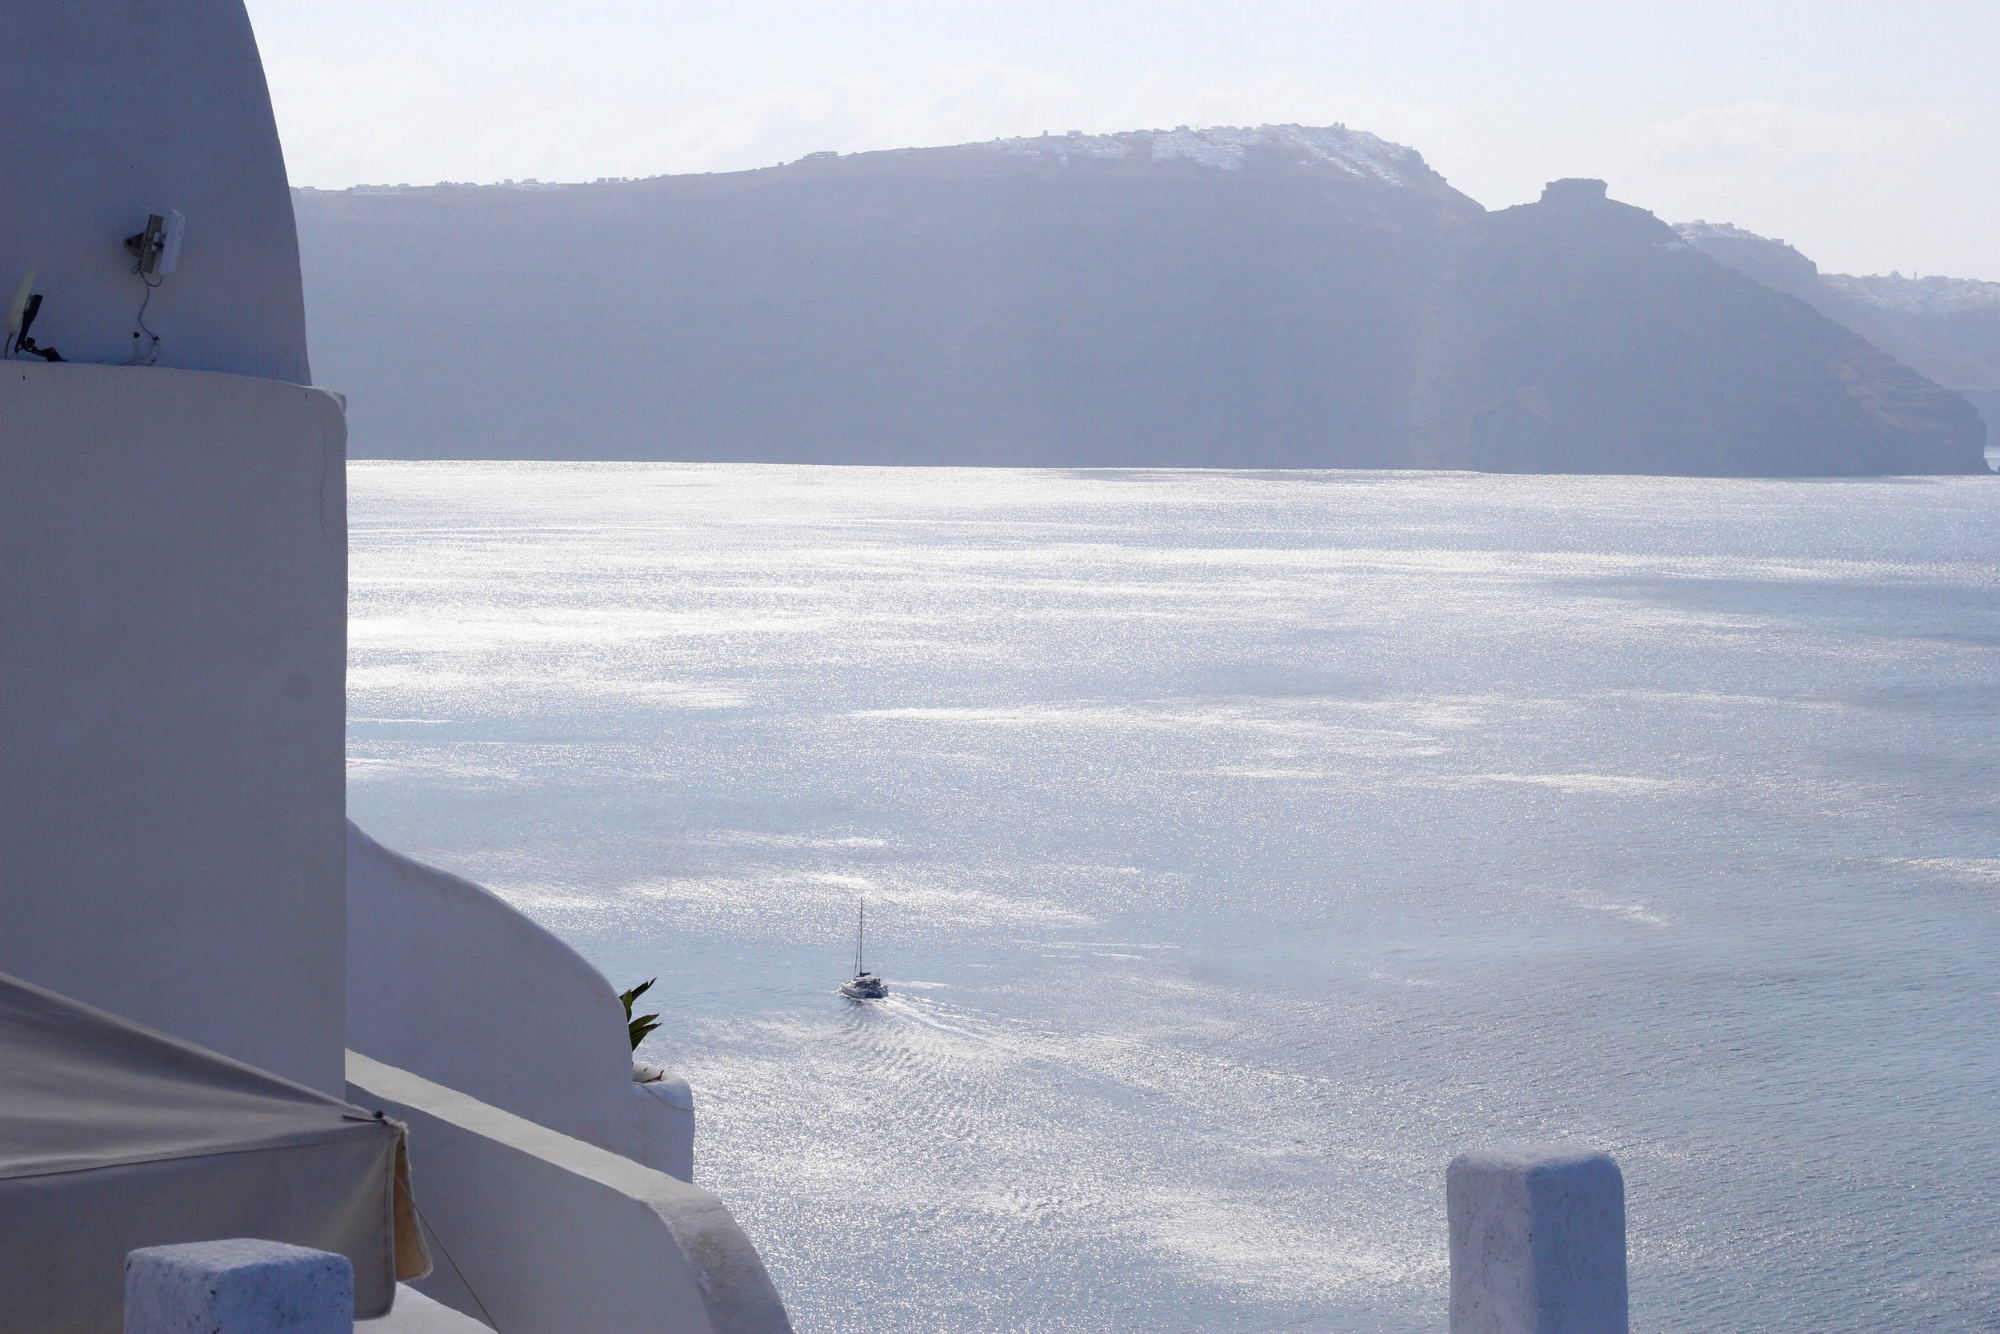 One of the many breathtaking views from Oia, Santorini